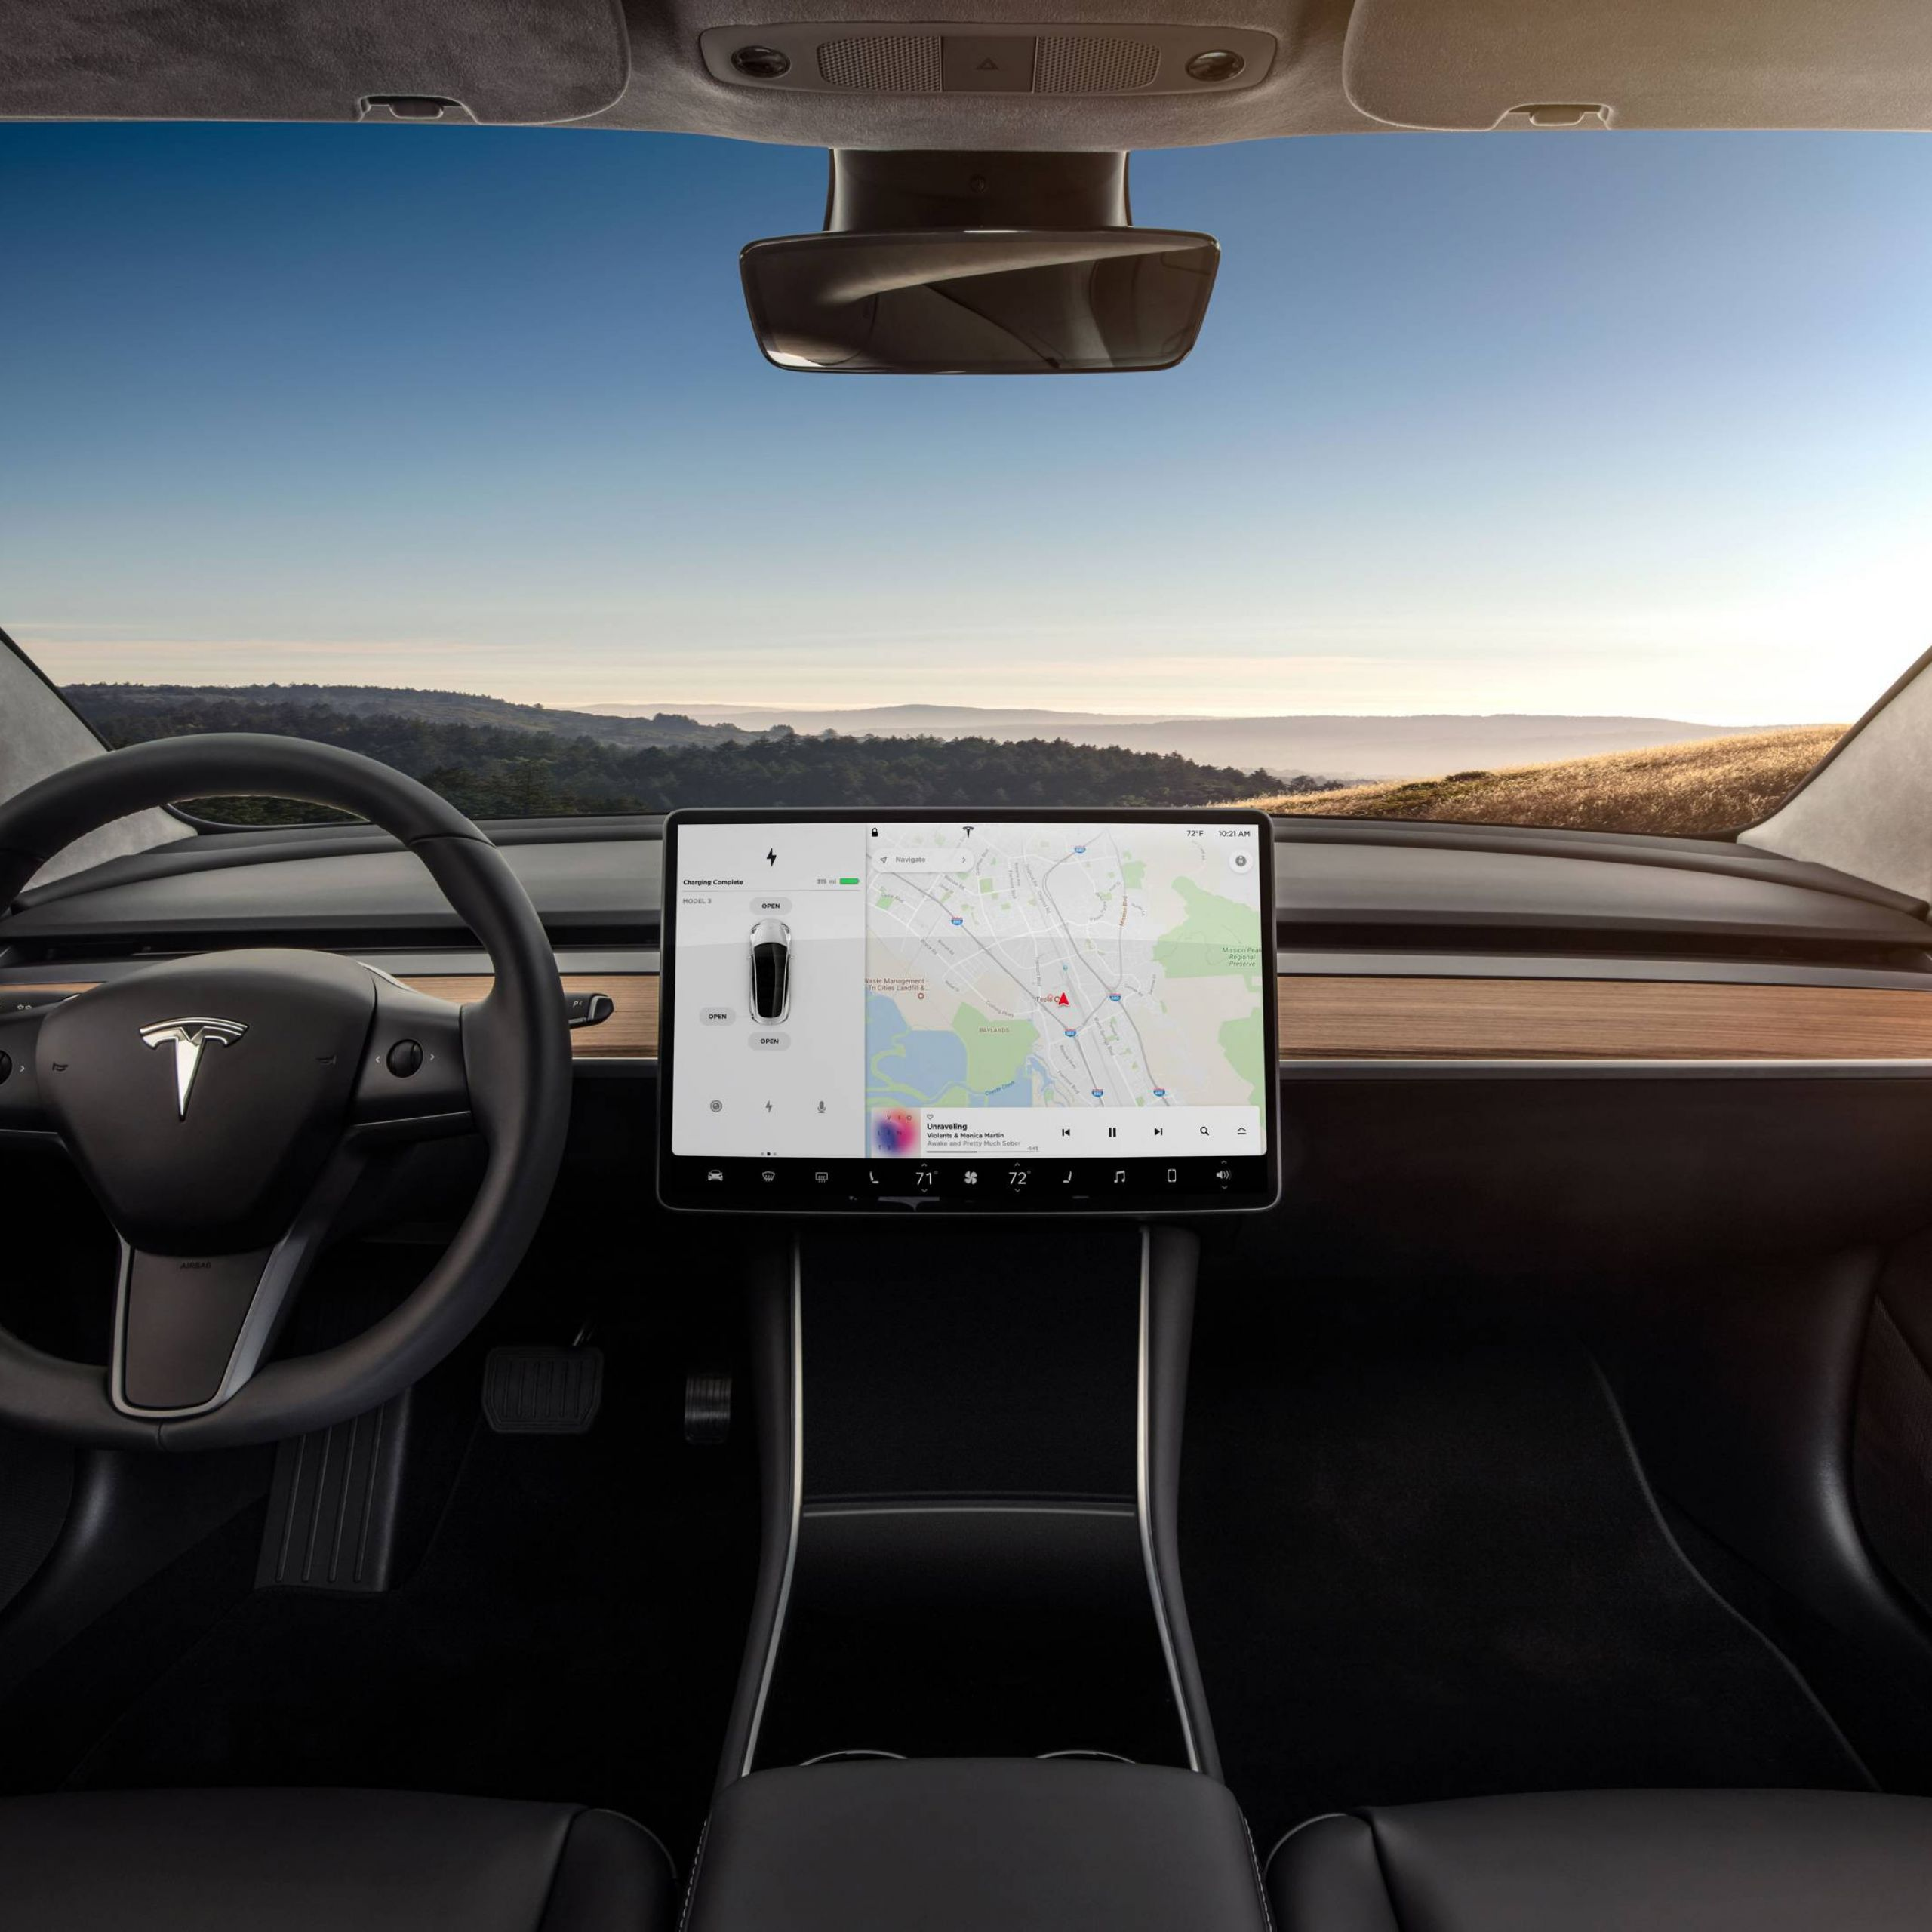 Tesla History Fresh Tesla Model 3 Review Worth the Wait but Not so Cheap after